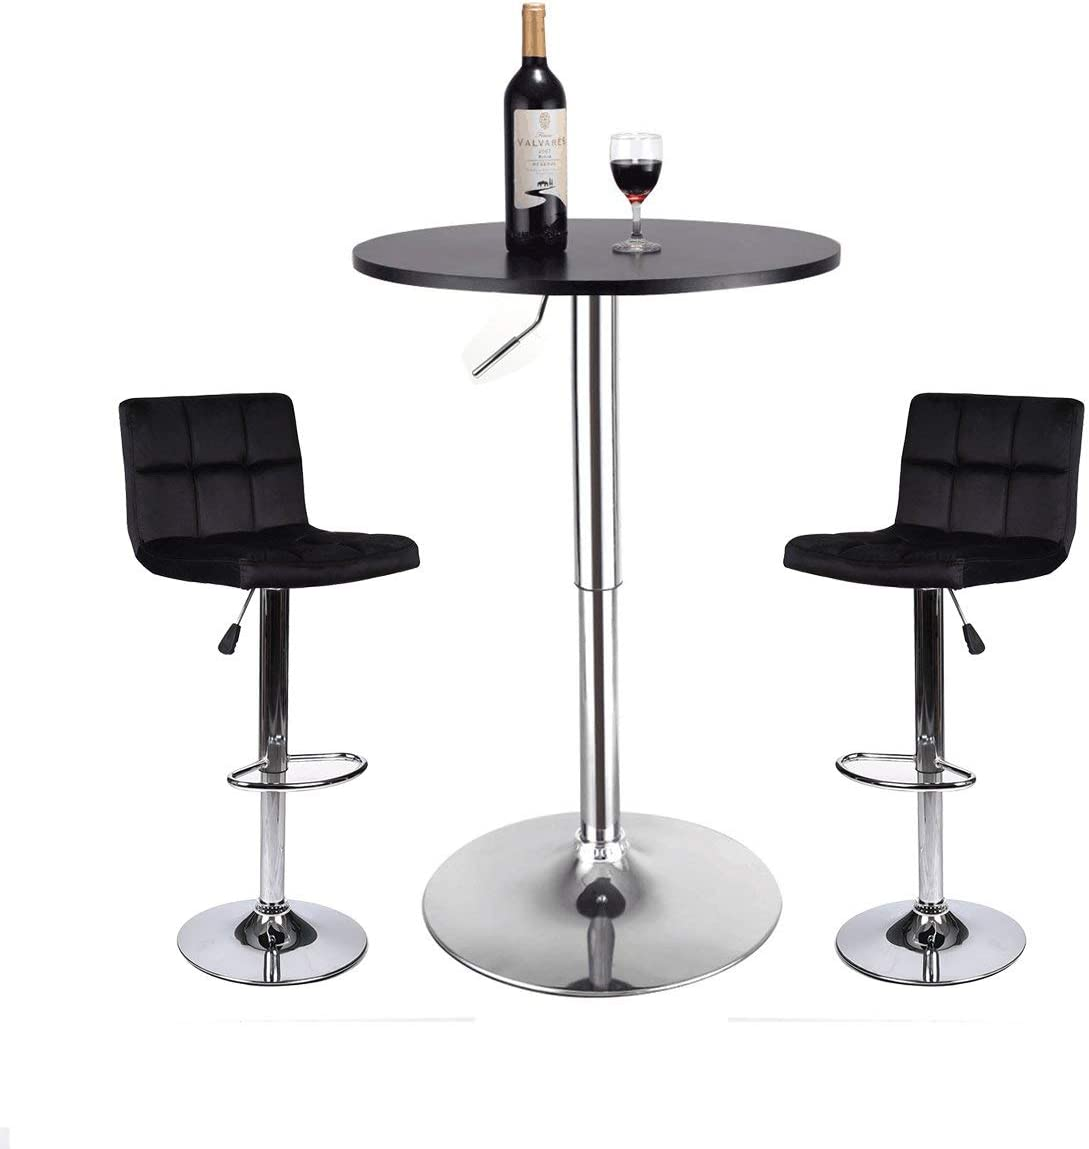 YOURLITEAMZ Bar Table and Stools Set - Pub Table and Chairs Set 3 Piece Adjustable Bar Height Table 24 Inch Modern Swivel Counter Height Bar Stools Set of 2 for Kicthen Home Pub